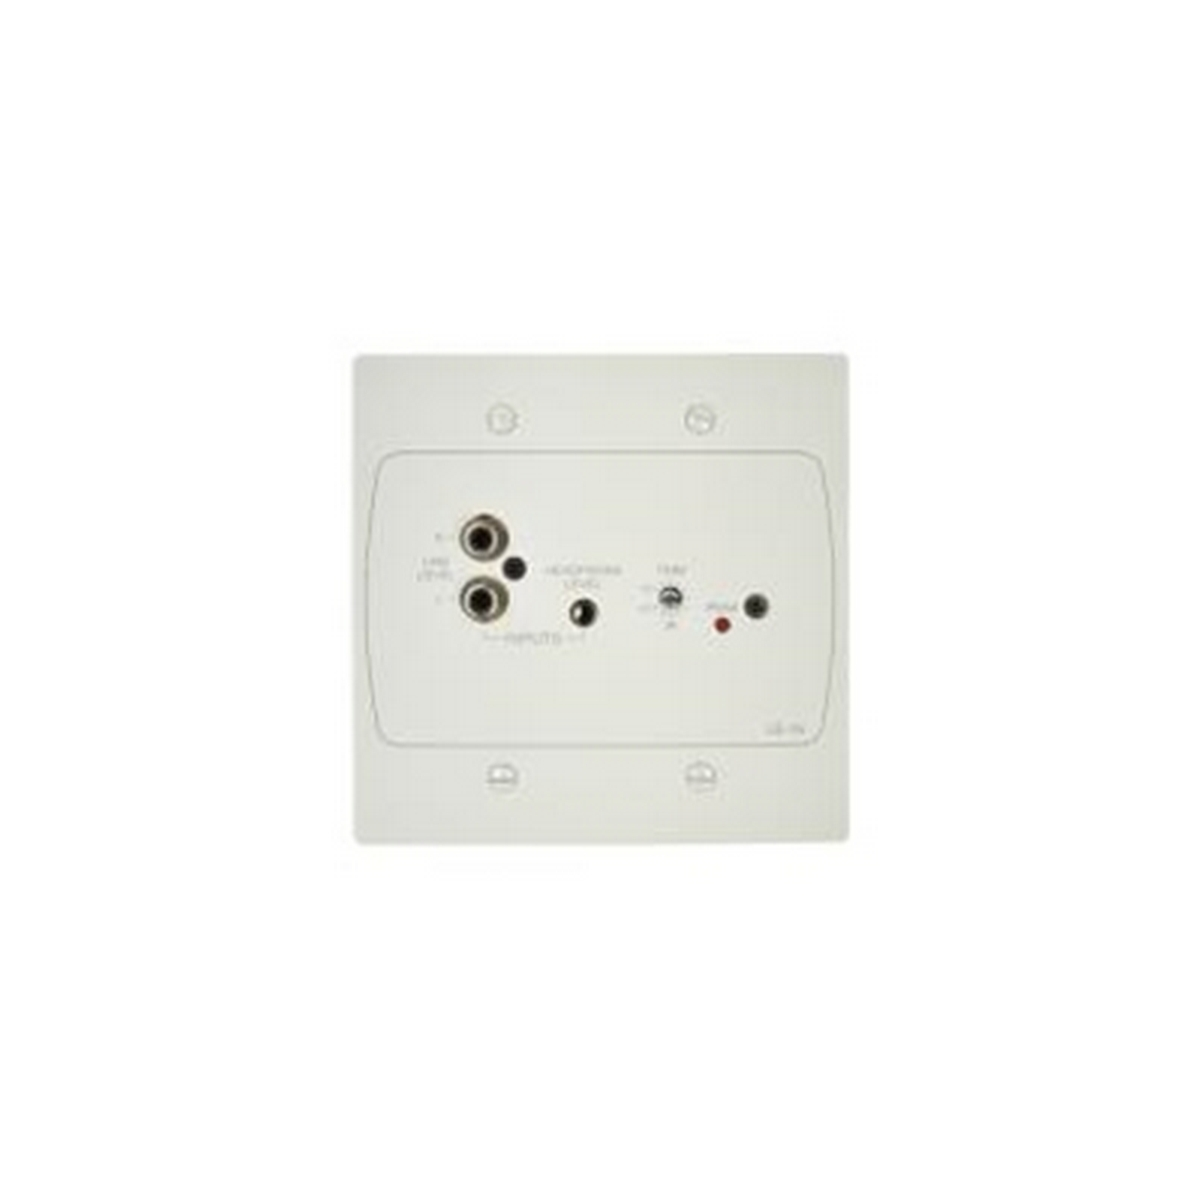 Cloud WhiteActiveInputPlatewith1StereoLineInput(Phonoand3.5mmJackSocket)forDCM1orDCM1e: USA Vers.